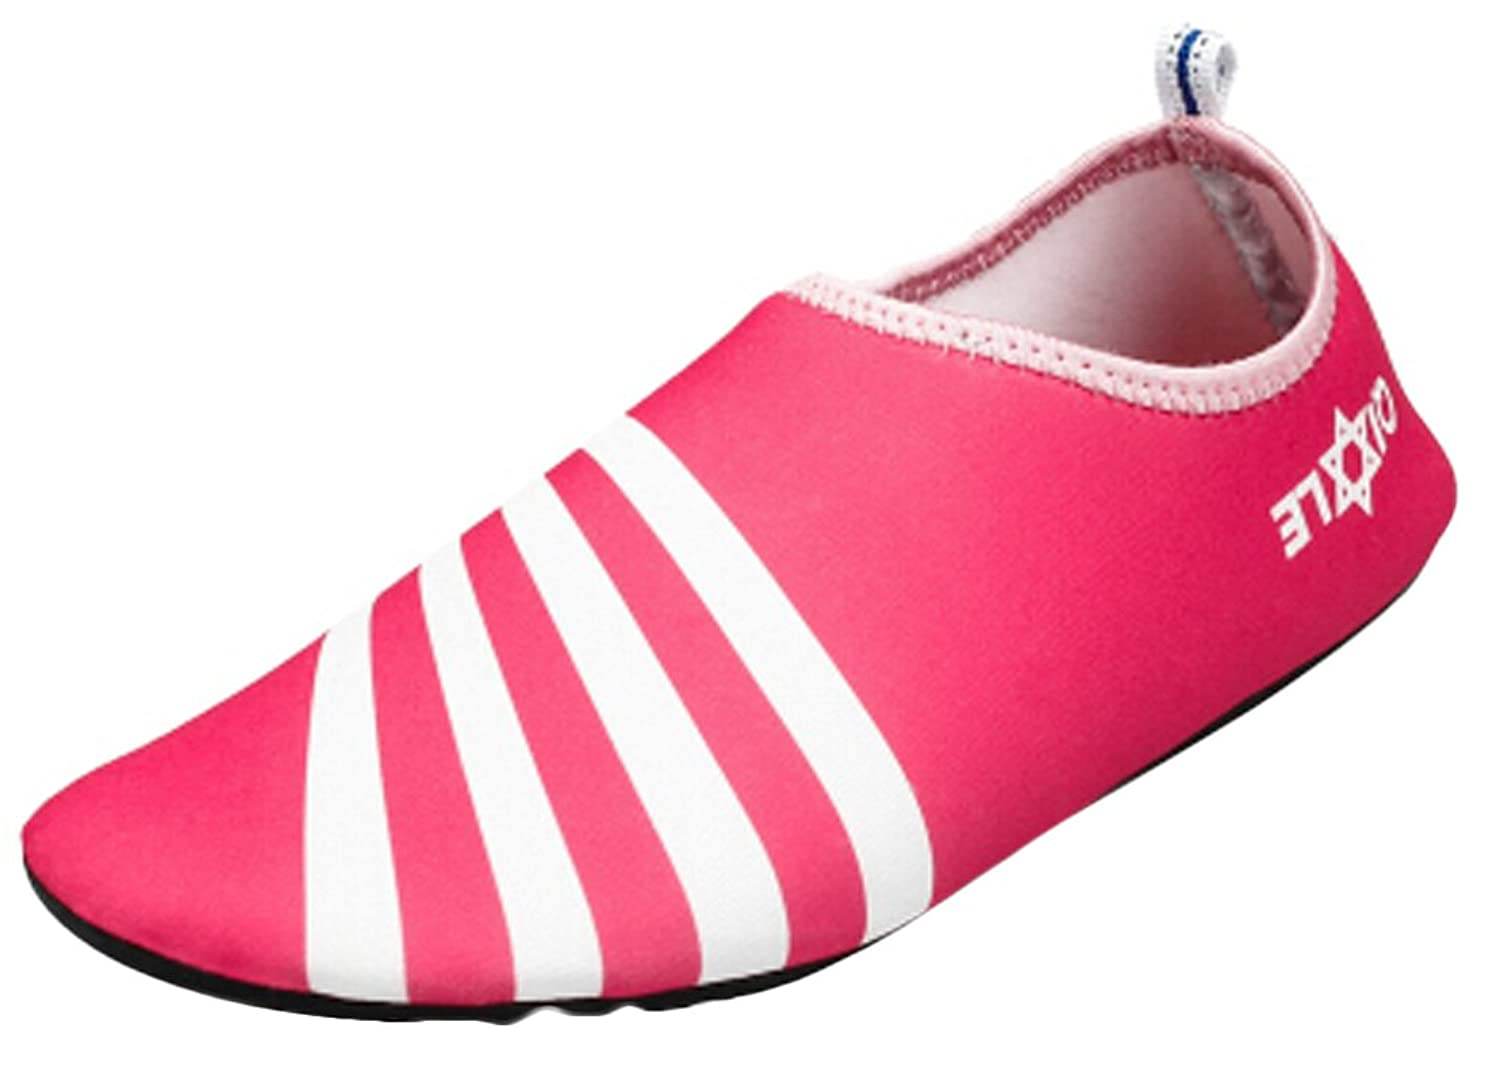 Ace Women's Anti-skid Elastic Quick-drying Sand Beach Water Shoes 11 Colors